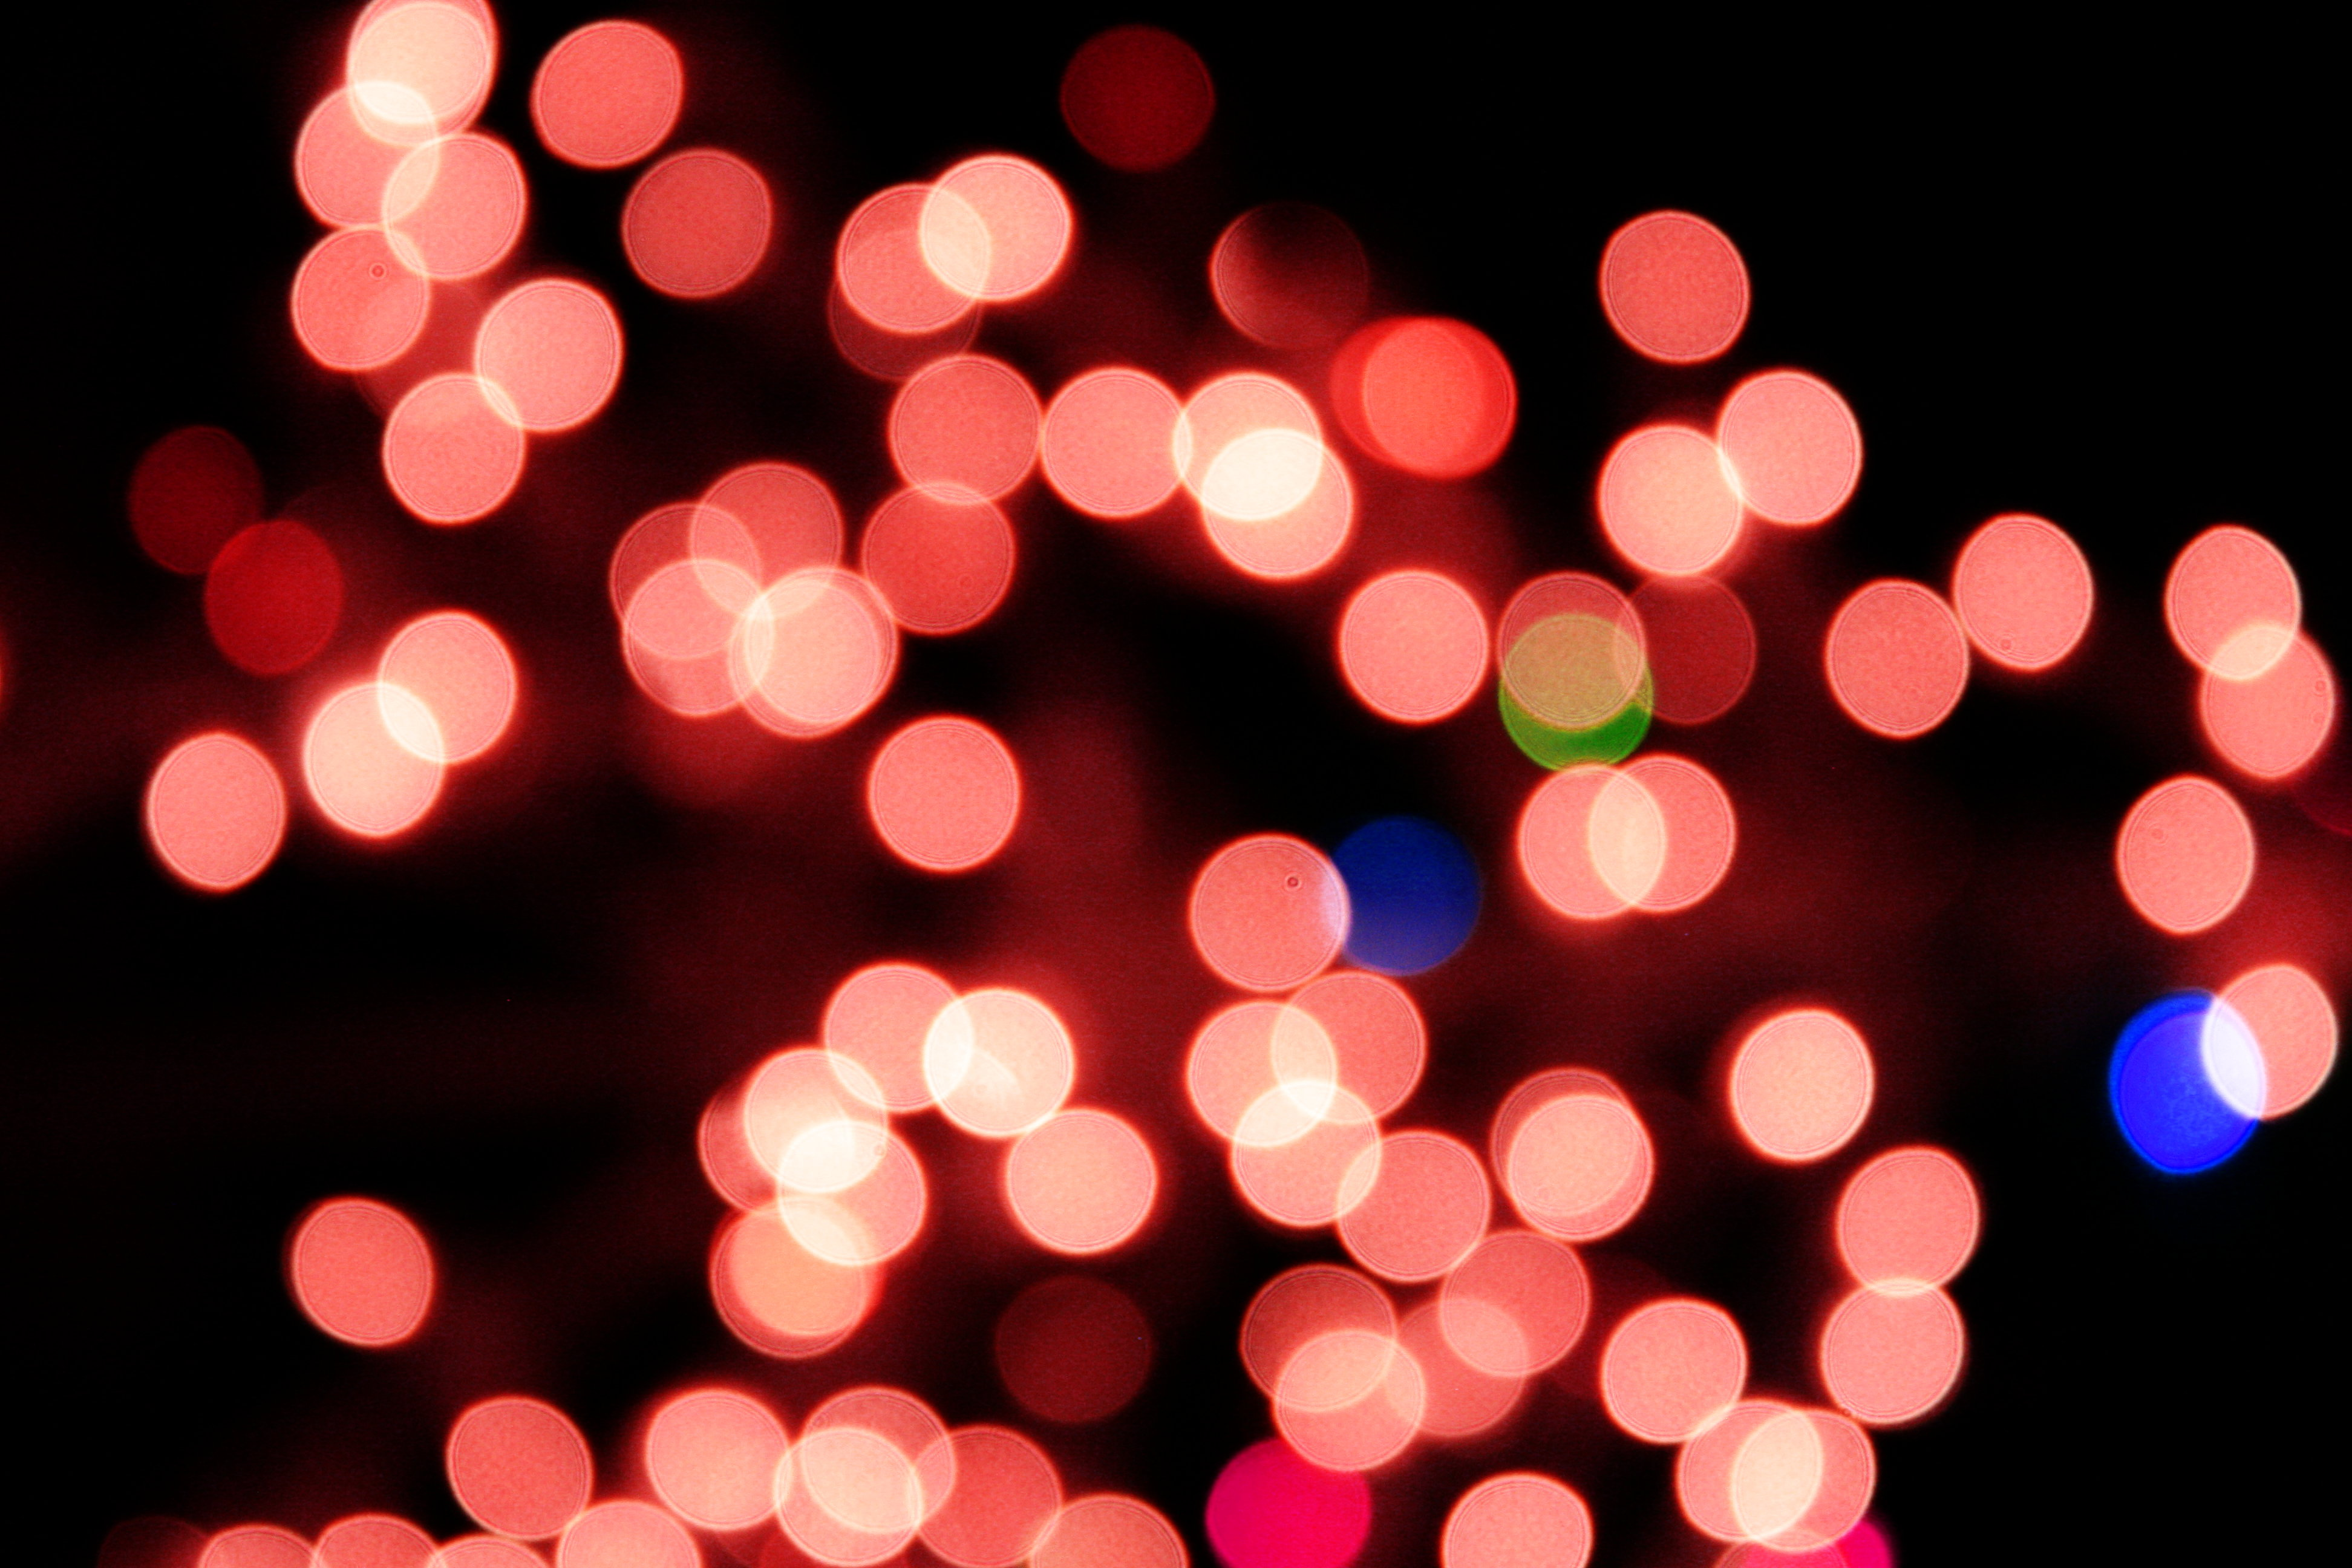 Blurred Christmas Lights Red Picture Free Photograph